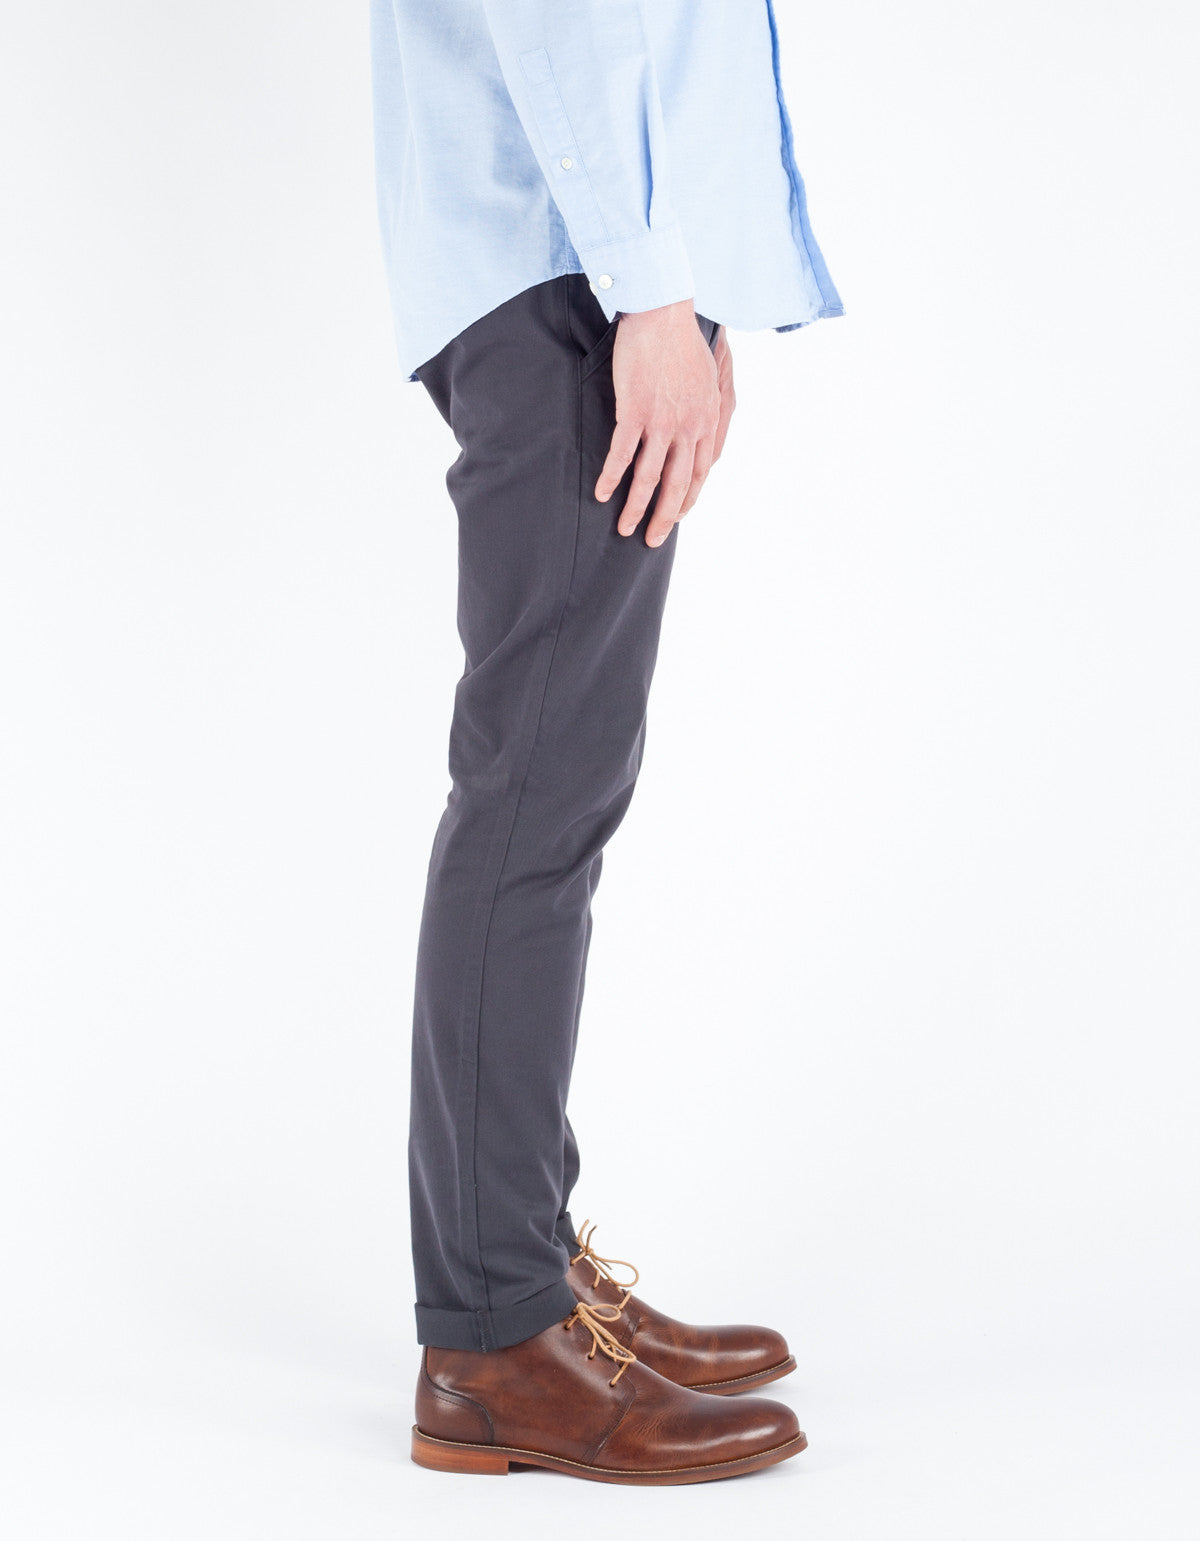 The Daily Co. Slim Chino Charcoal